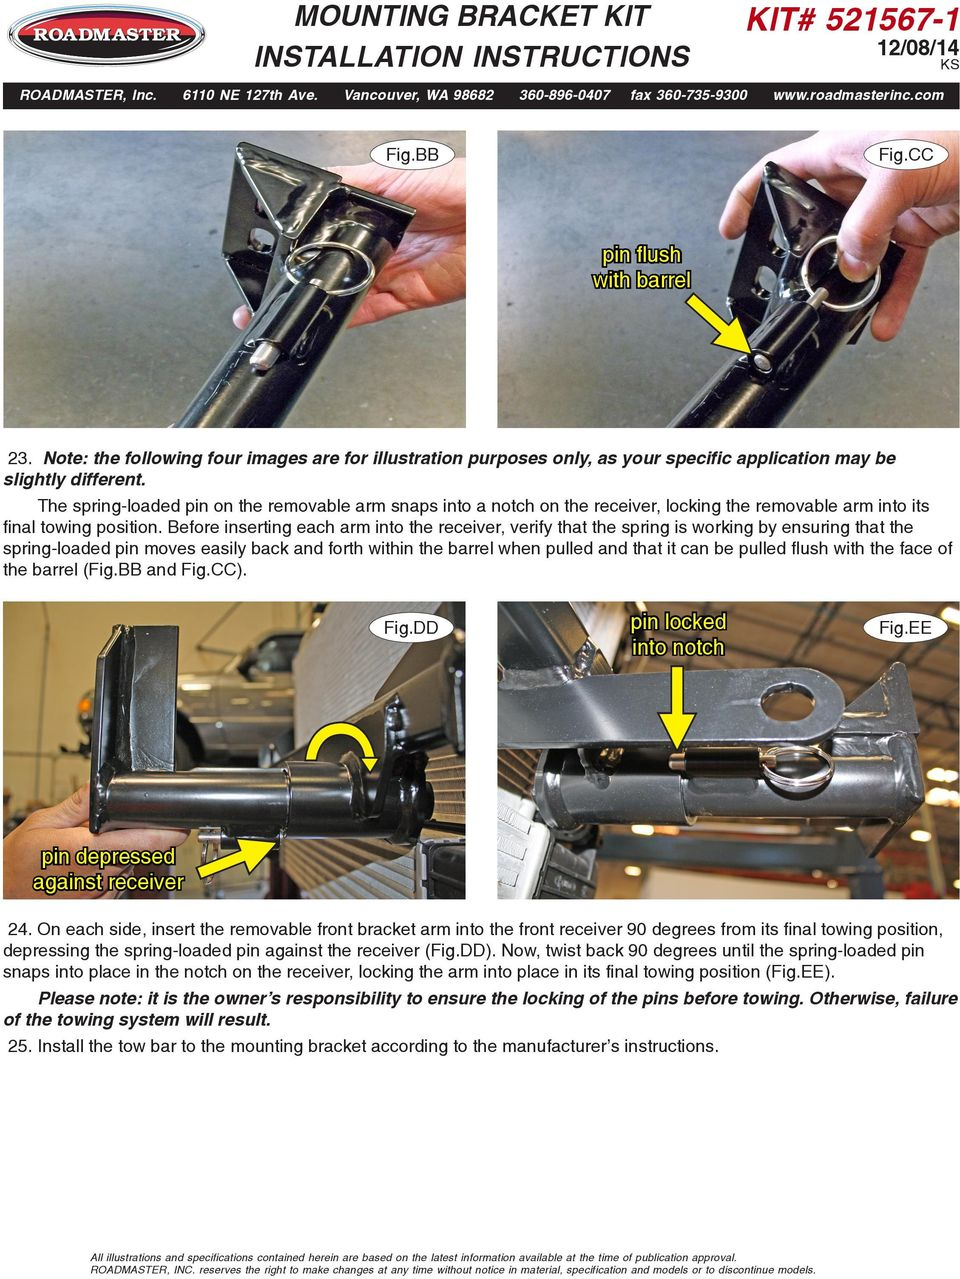 Before inserting each arm into the receiver, verify that the spring is working by ensuring that the spring-loaded pin moves easily back and forth within the barrel when pulled and that it can be